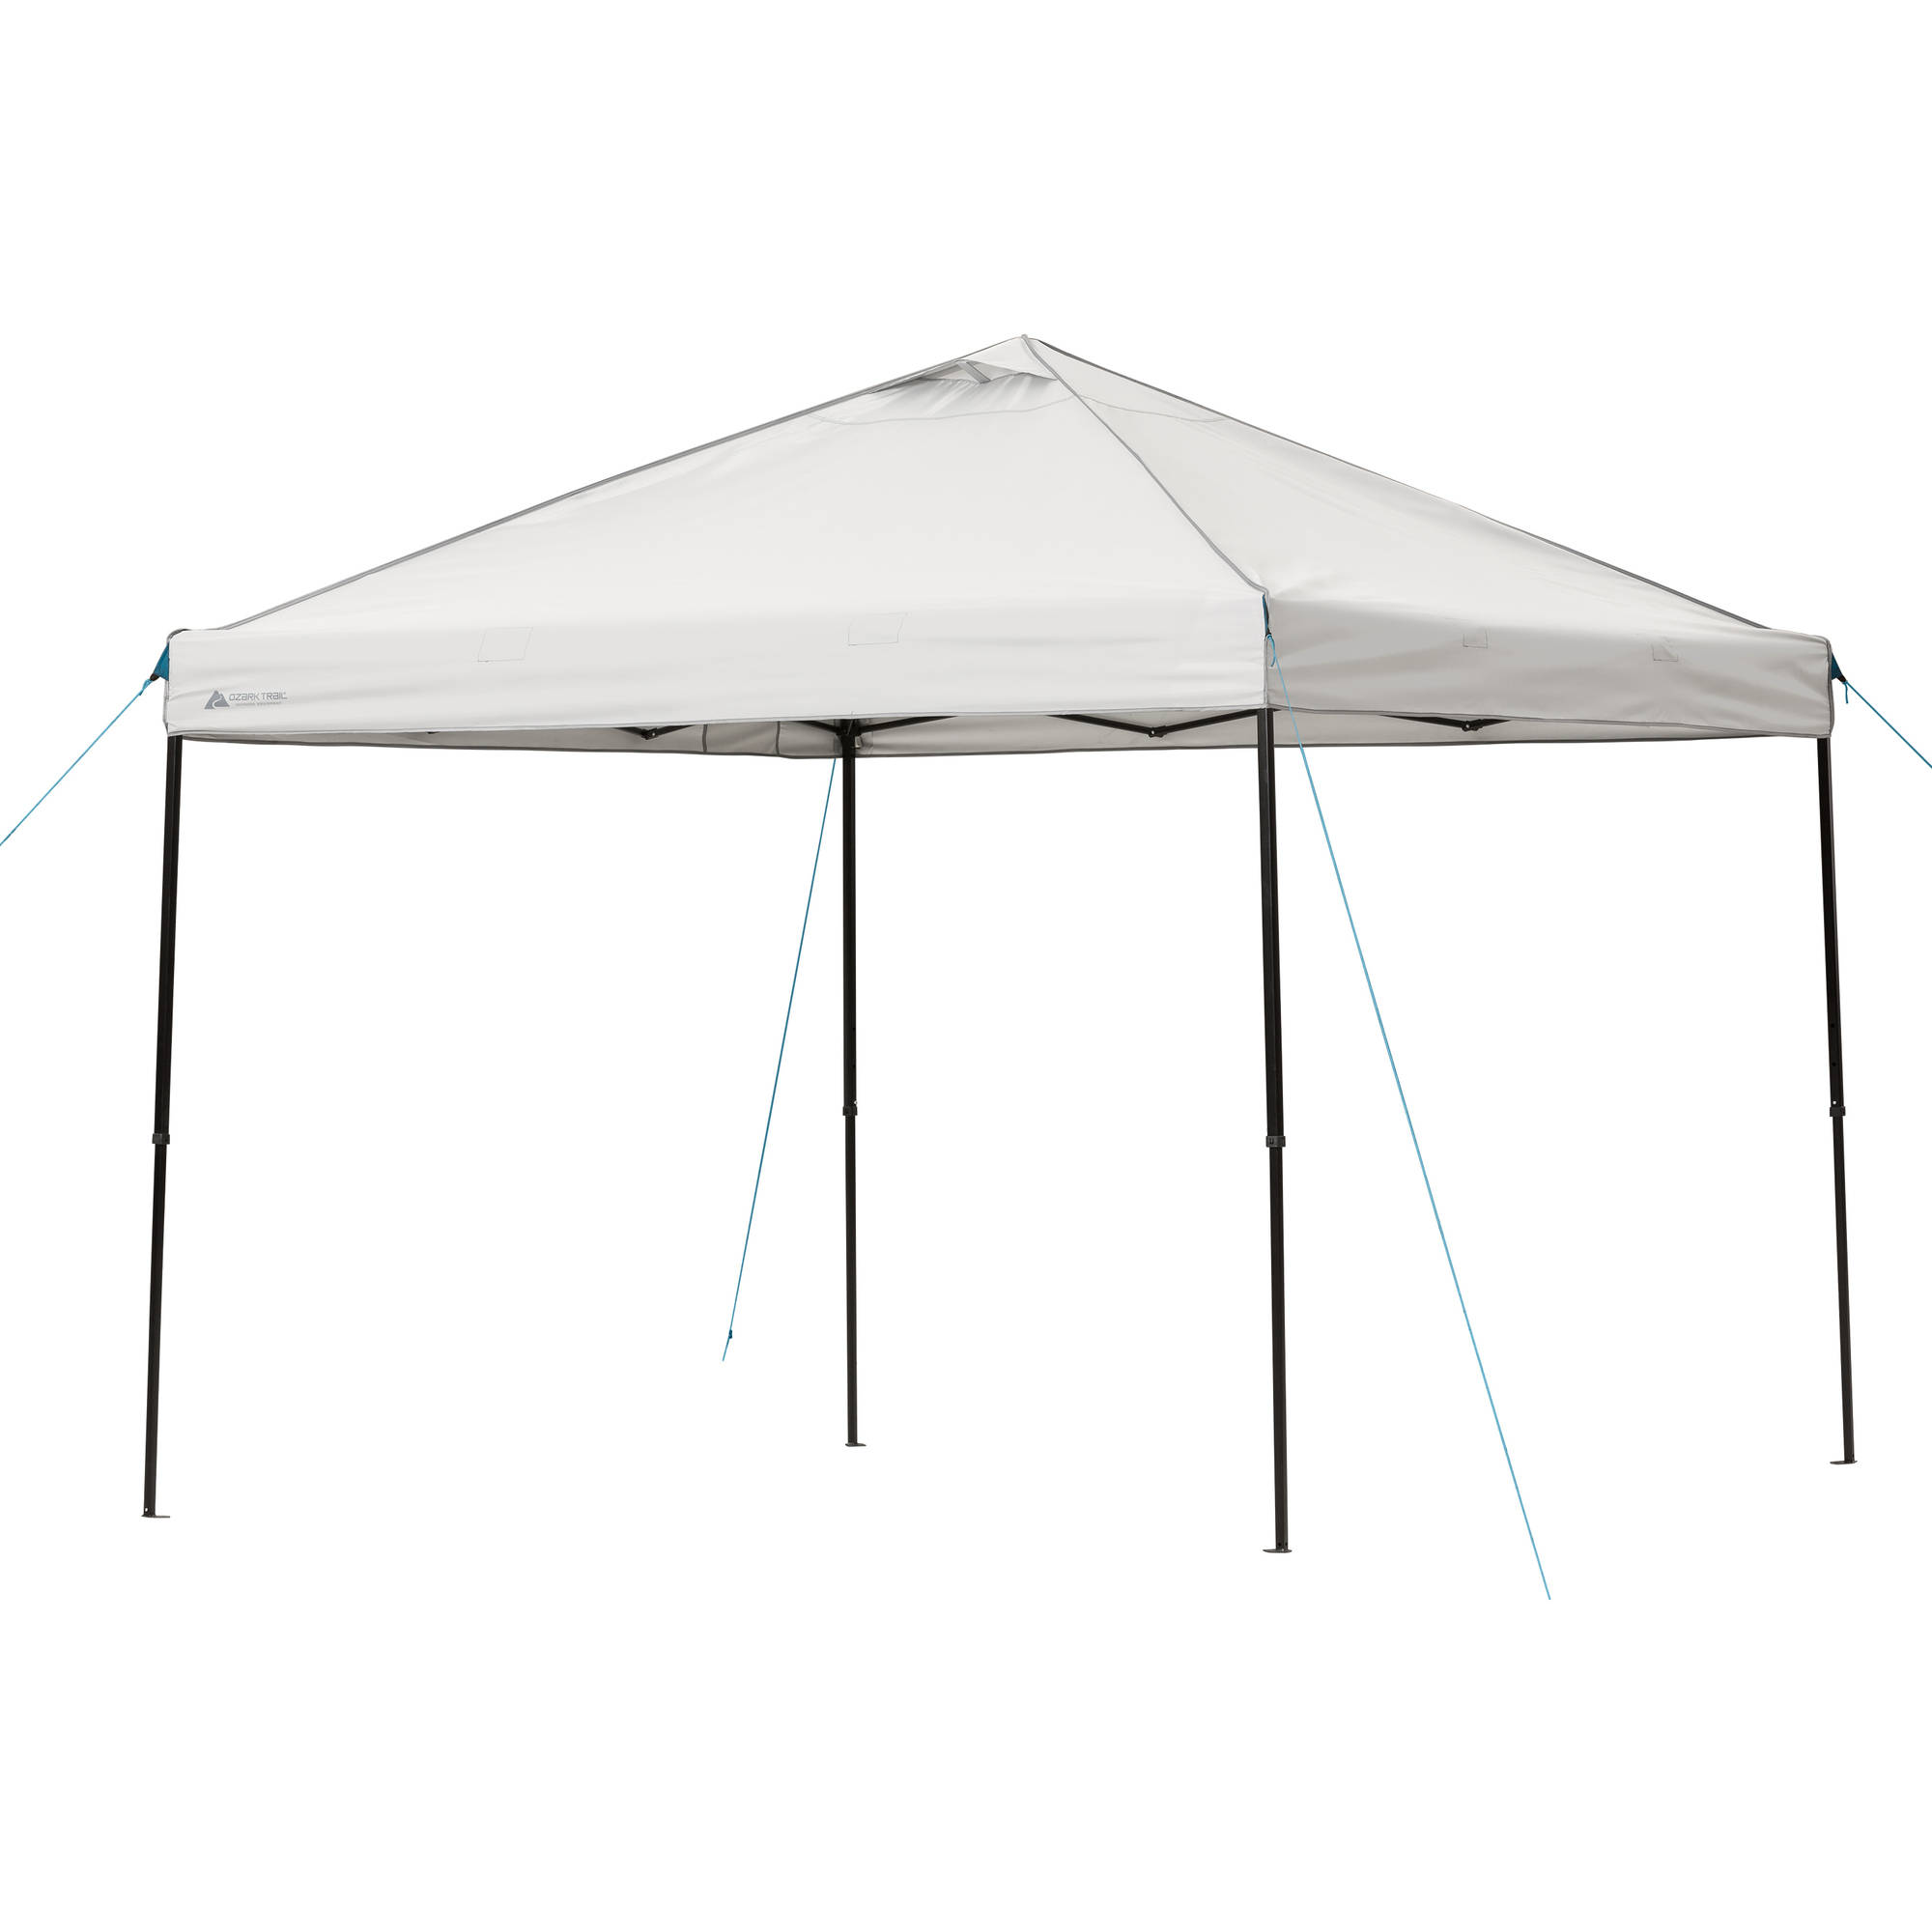 Hold It Down. Stake Medium Duty Trees Tarps Tents